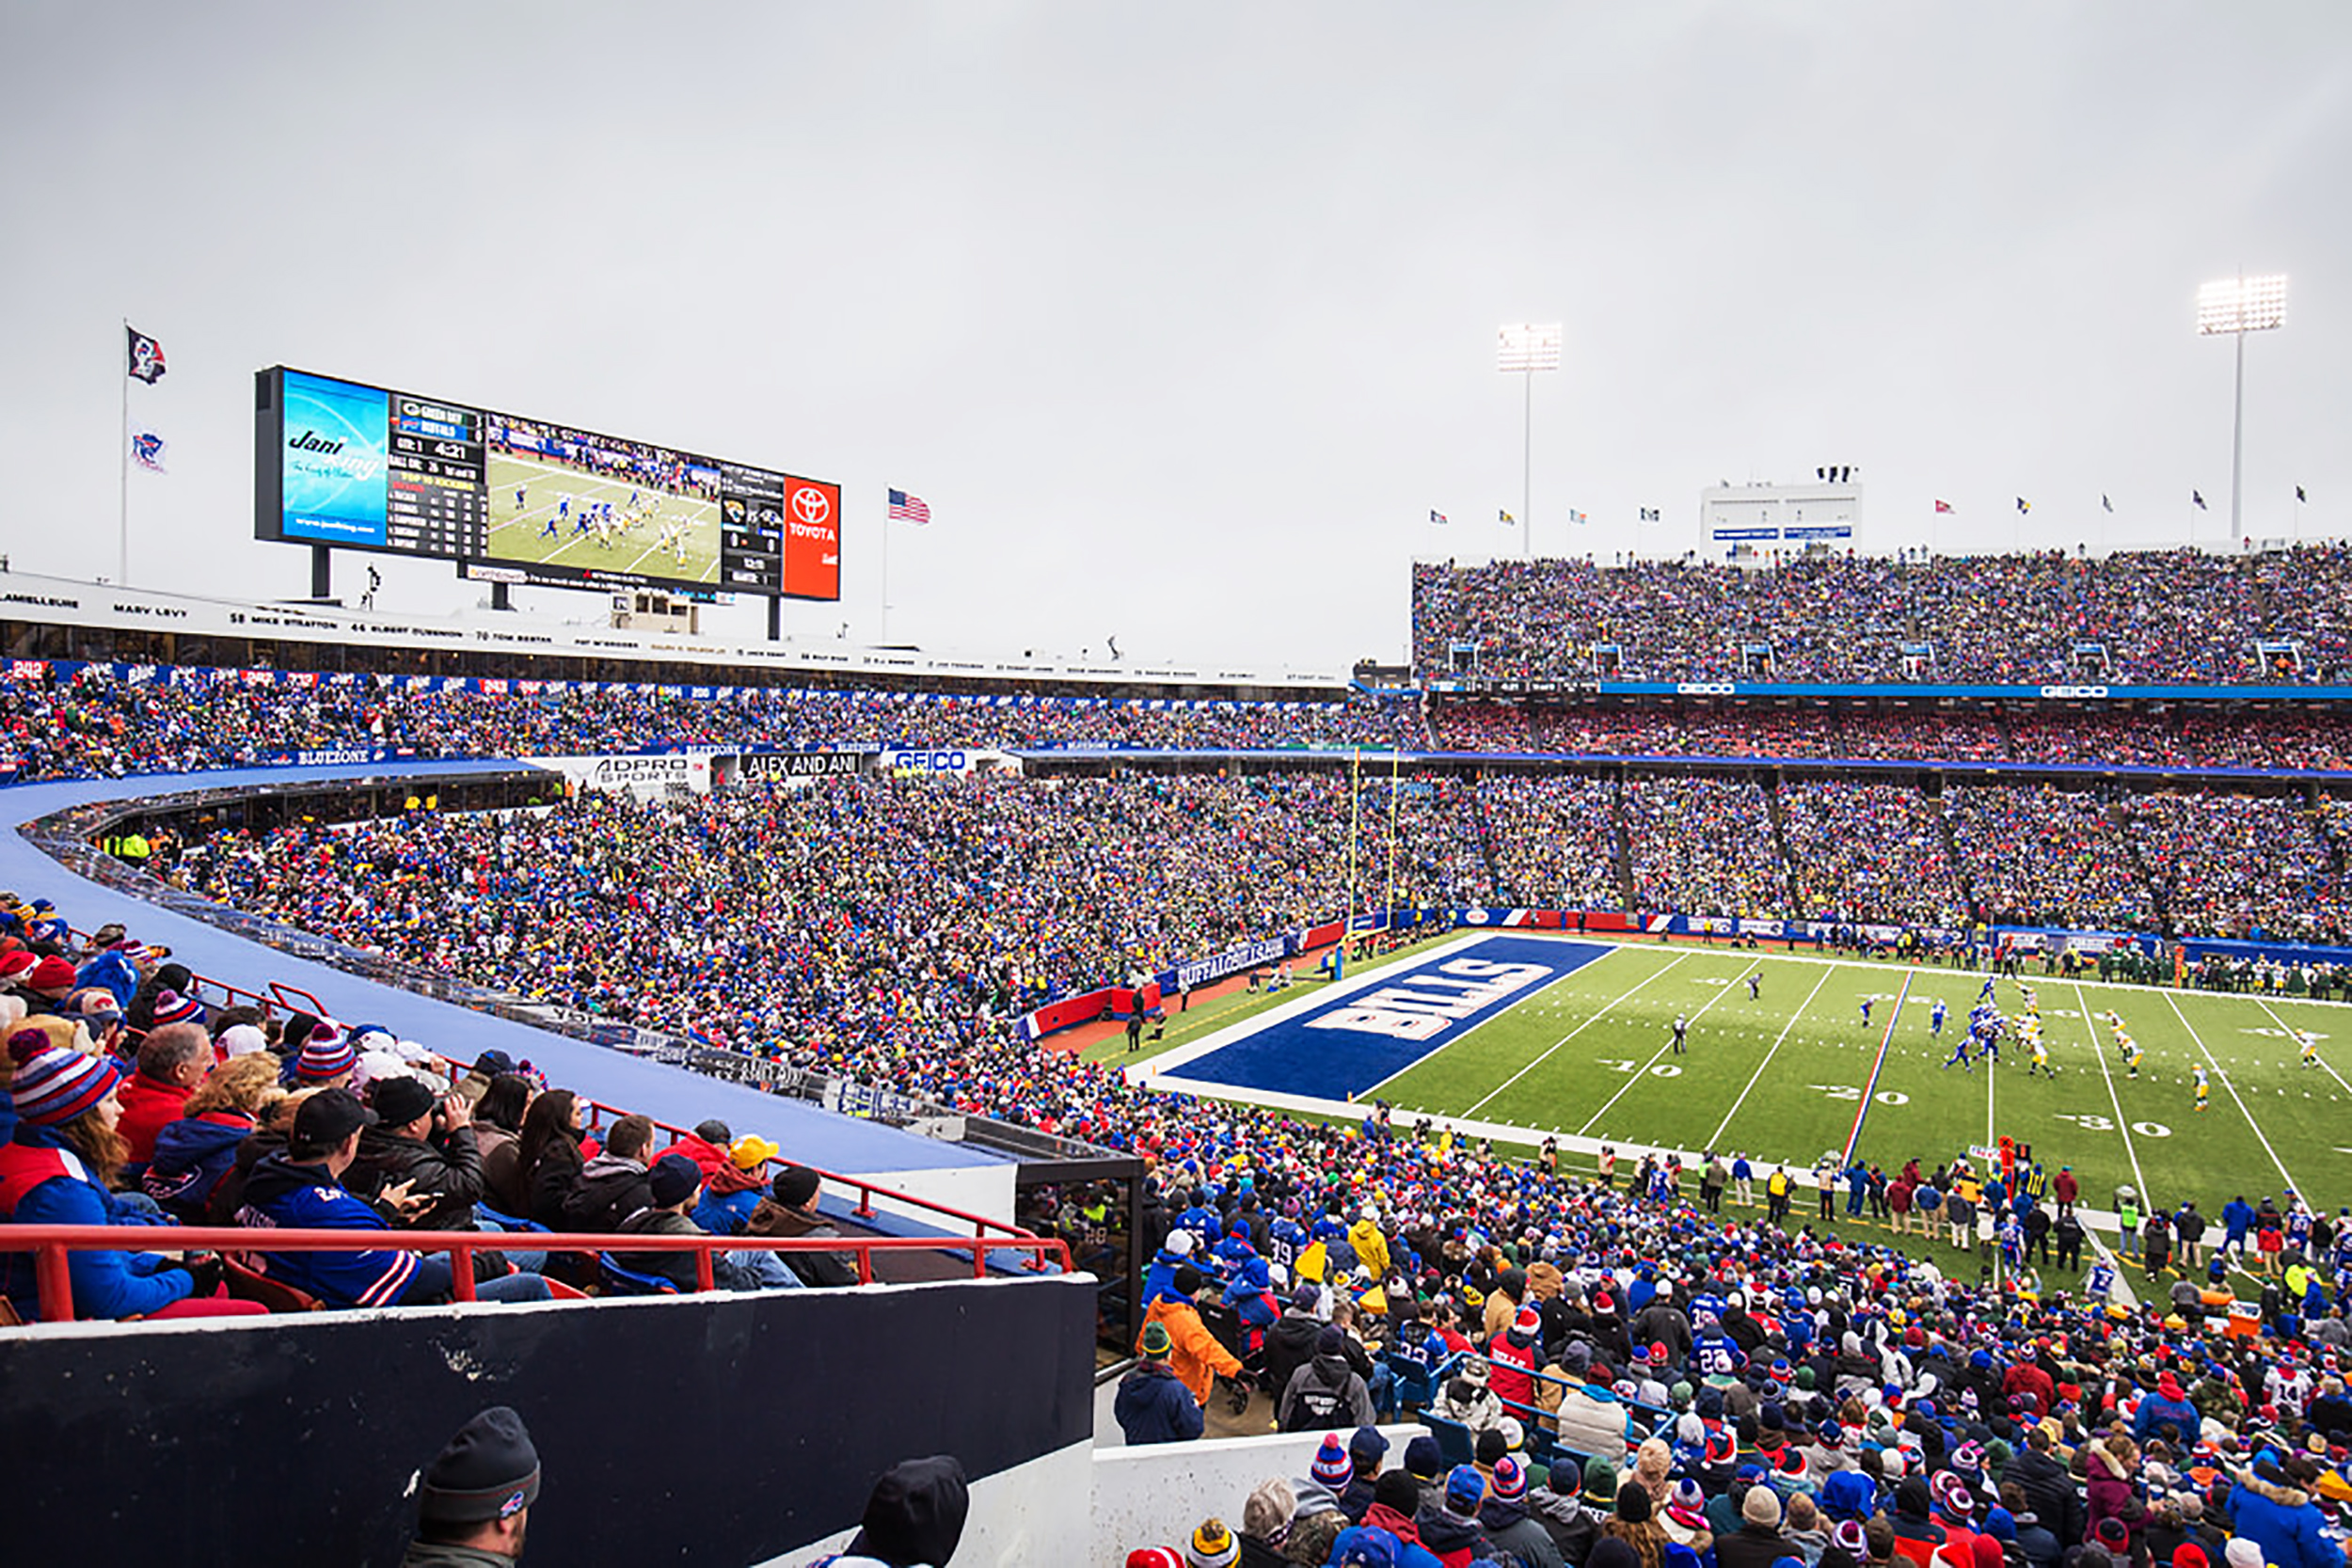 Bills Mafia's usual gathering place is at New Era Field in Orchard Park, N.Y. In the 2018 NFL season, Buffalo had a 4-4 record at home with the support of their fans (courtesy of Creative Commons).